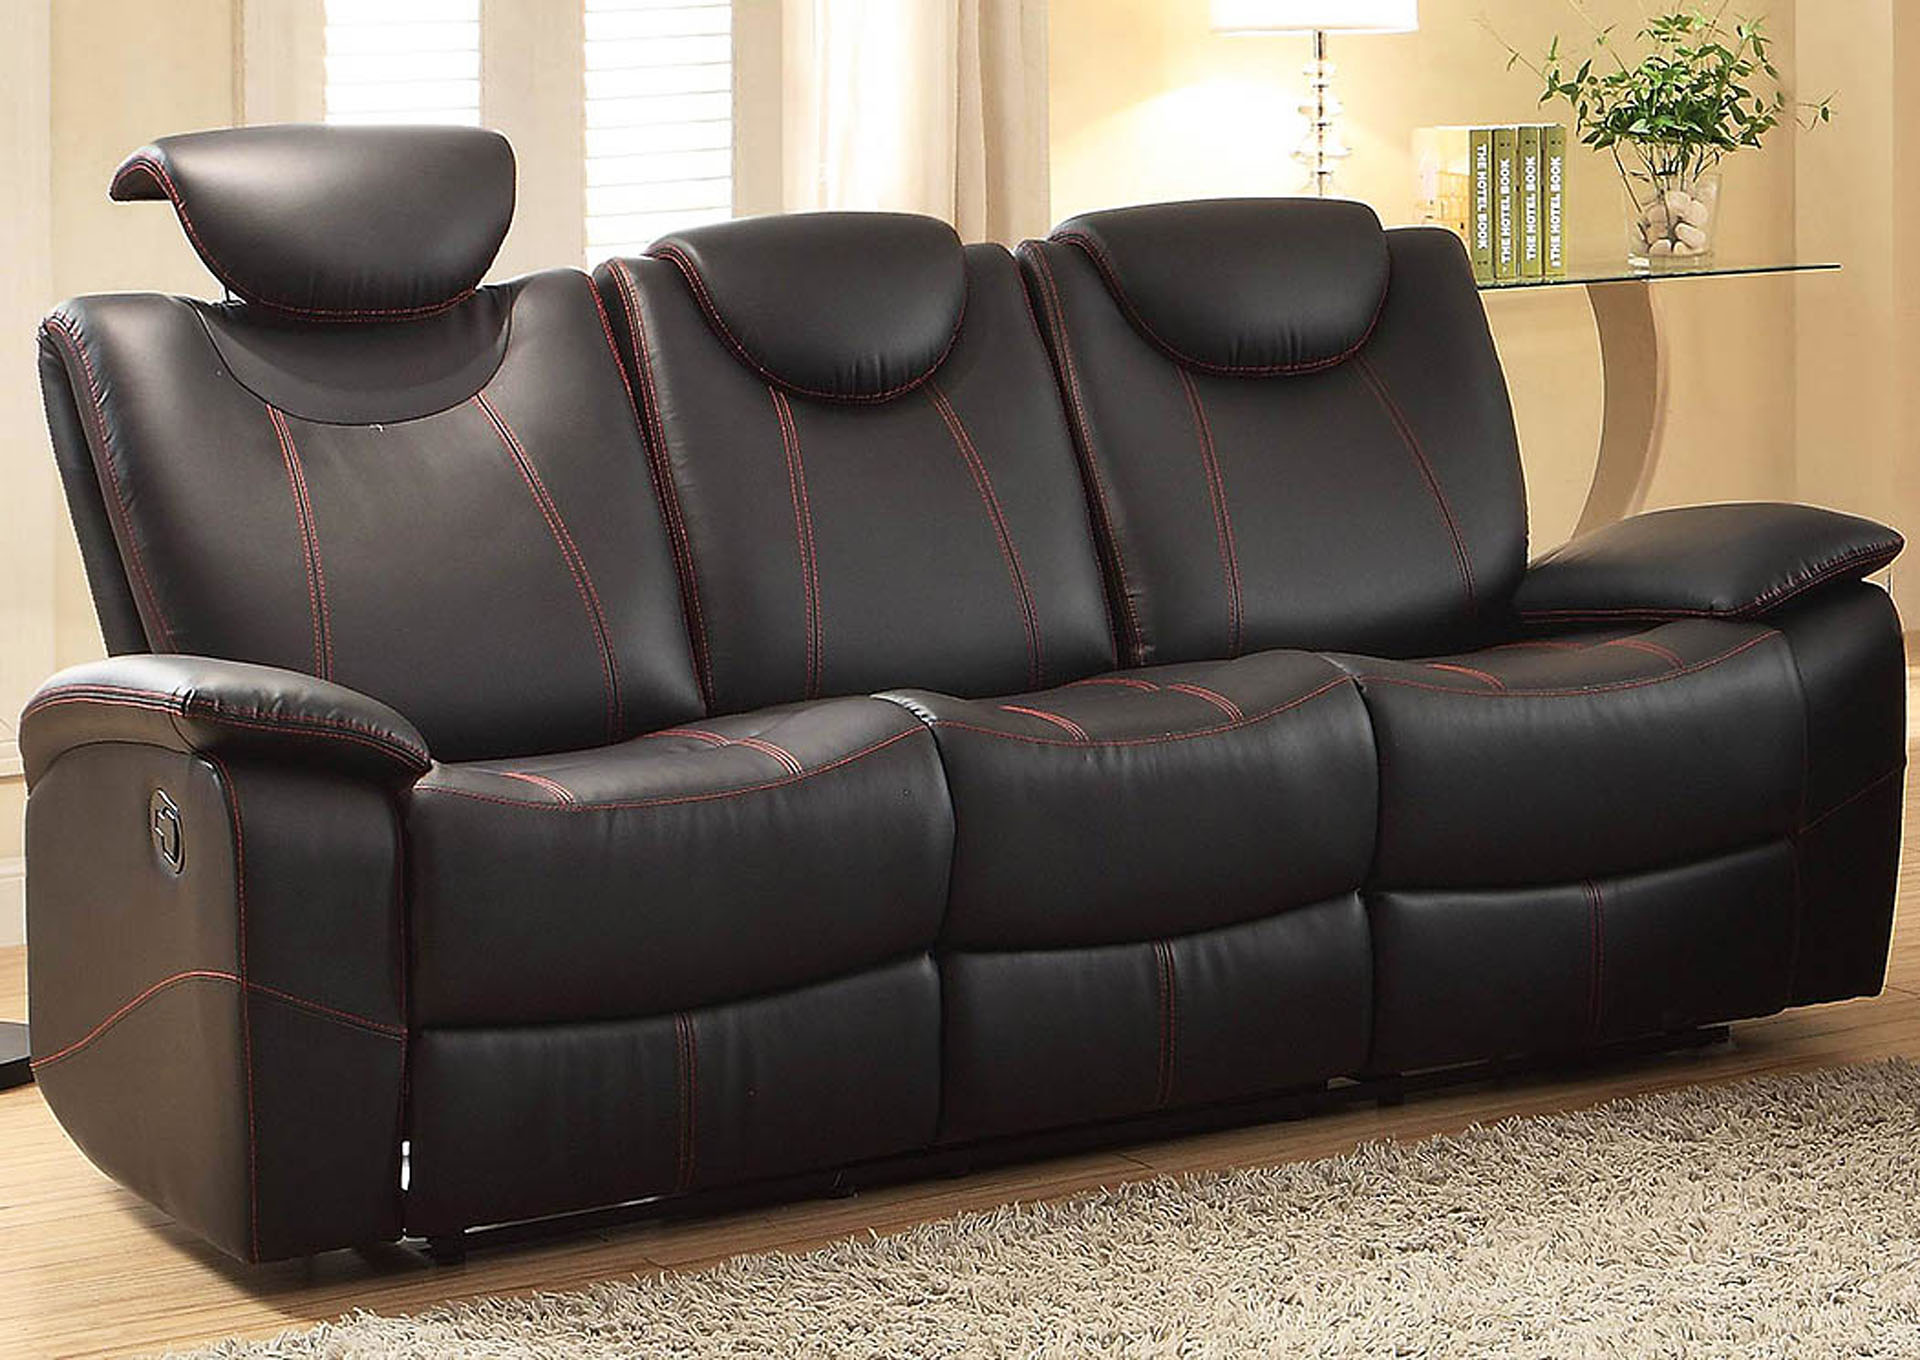 Talbot Black Double Reclining Sofa,Homelegance